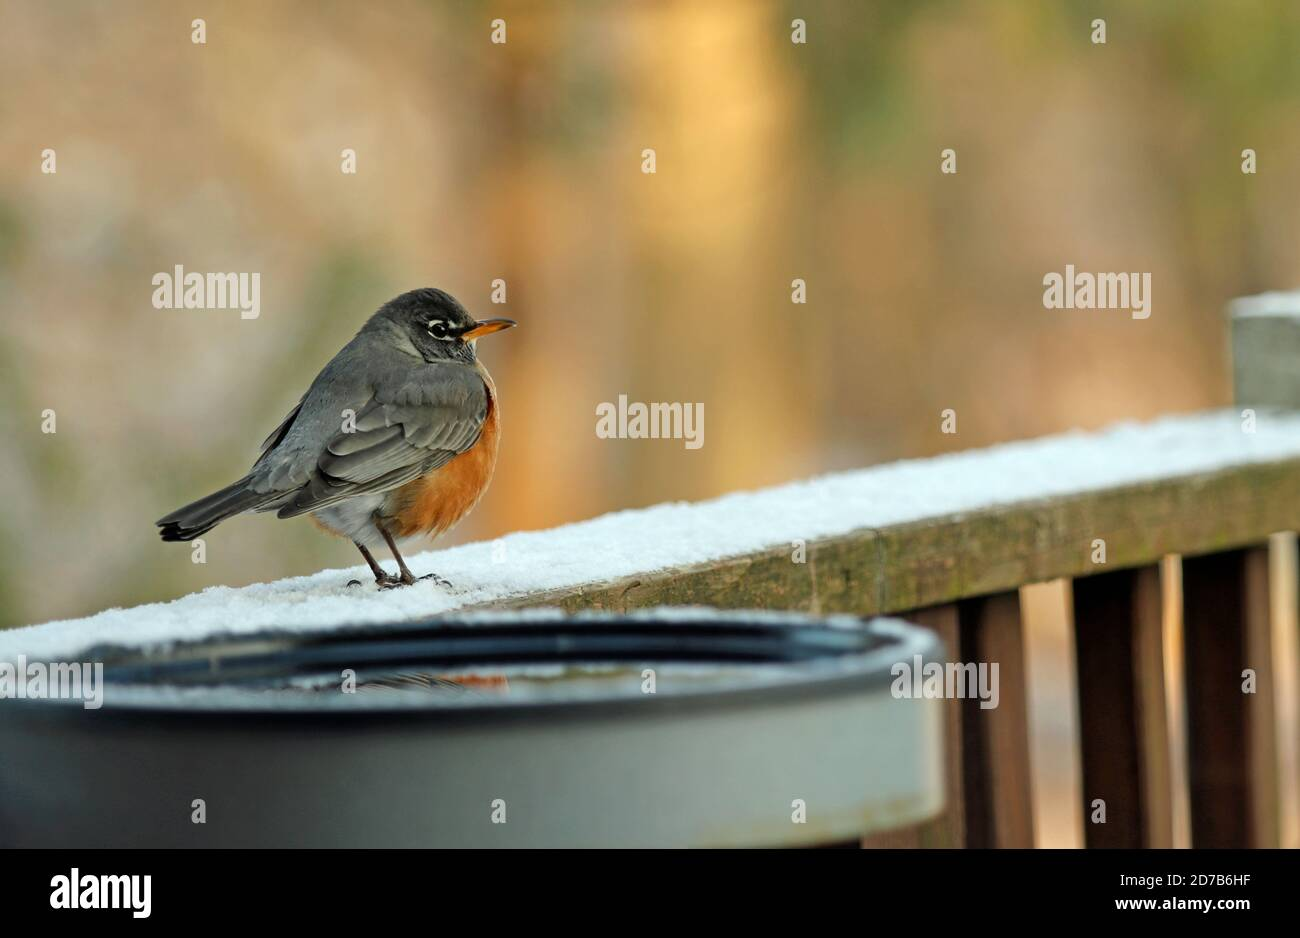 Close-up of an American robin (Turdus migratorius) perched on a deck railing in winter Stock Photo